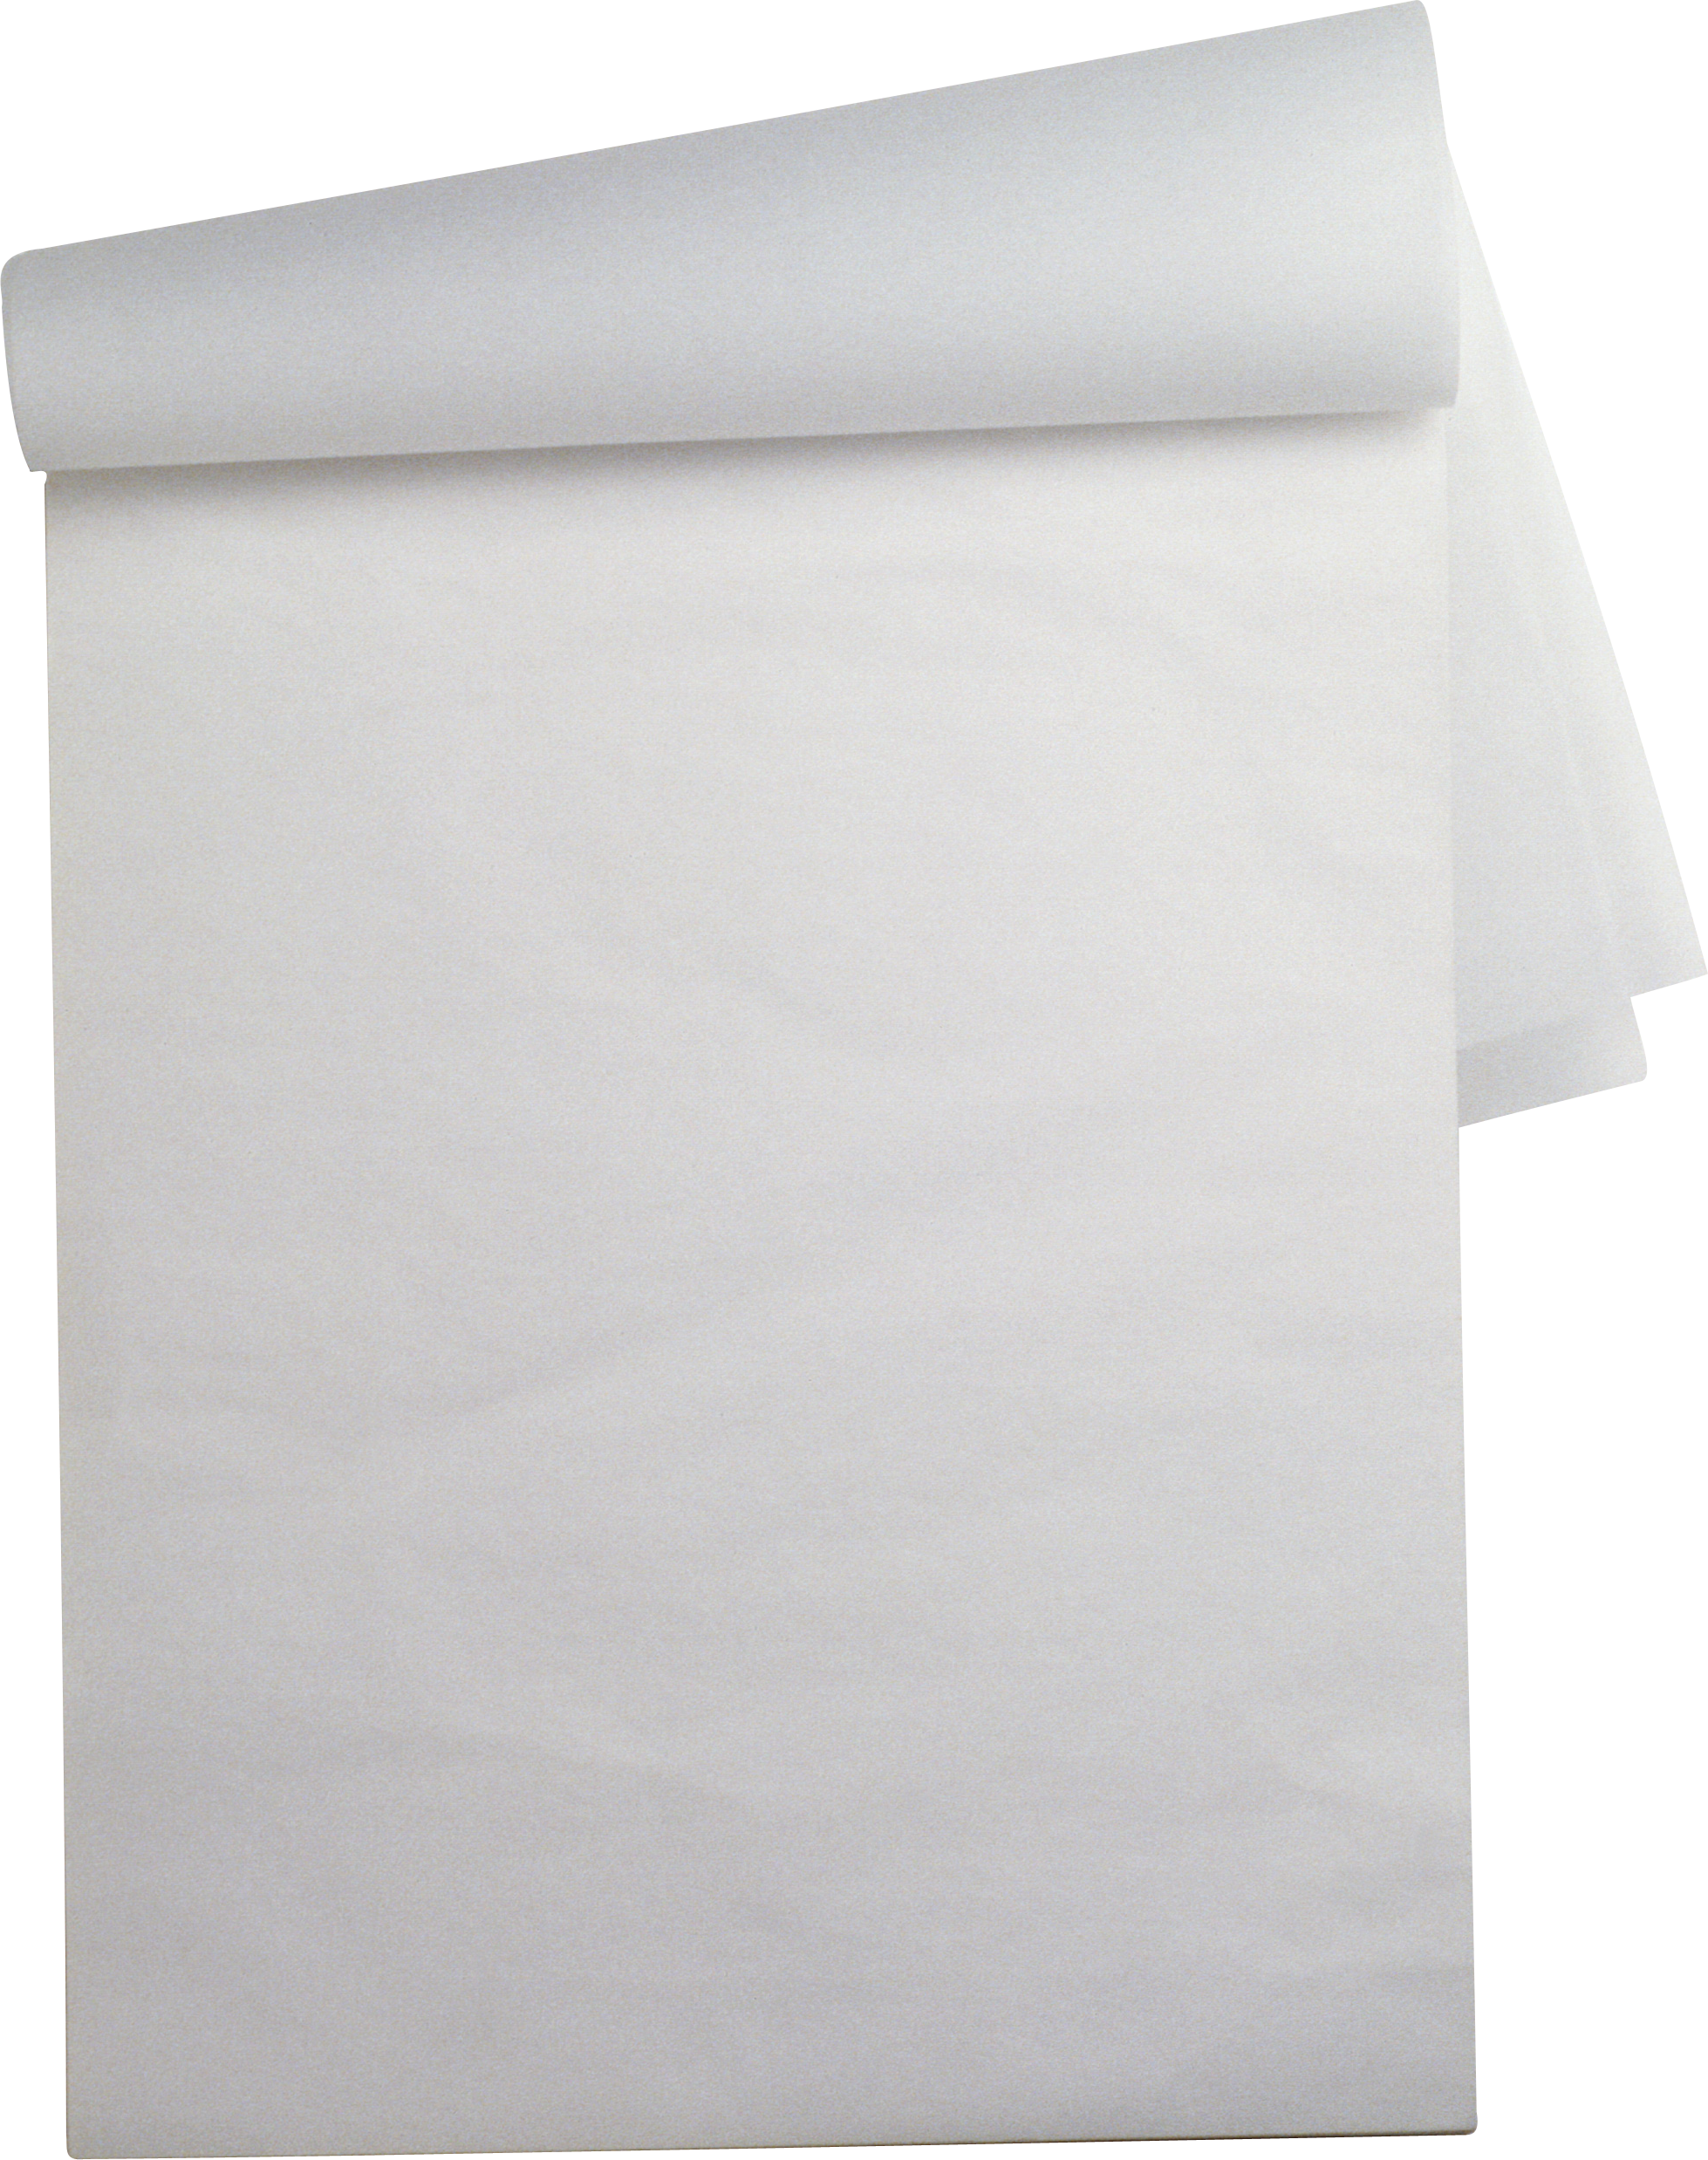 Sheet Png - Download Paper Sheet PNG Clipart - Free Transparent PNG Images ...